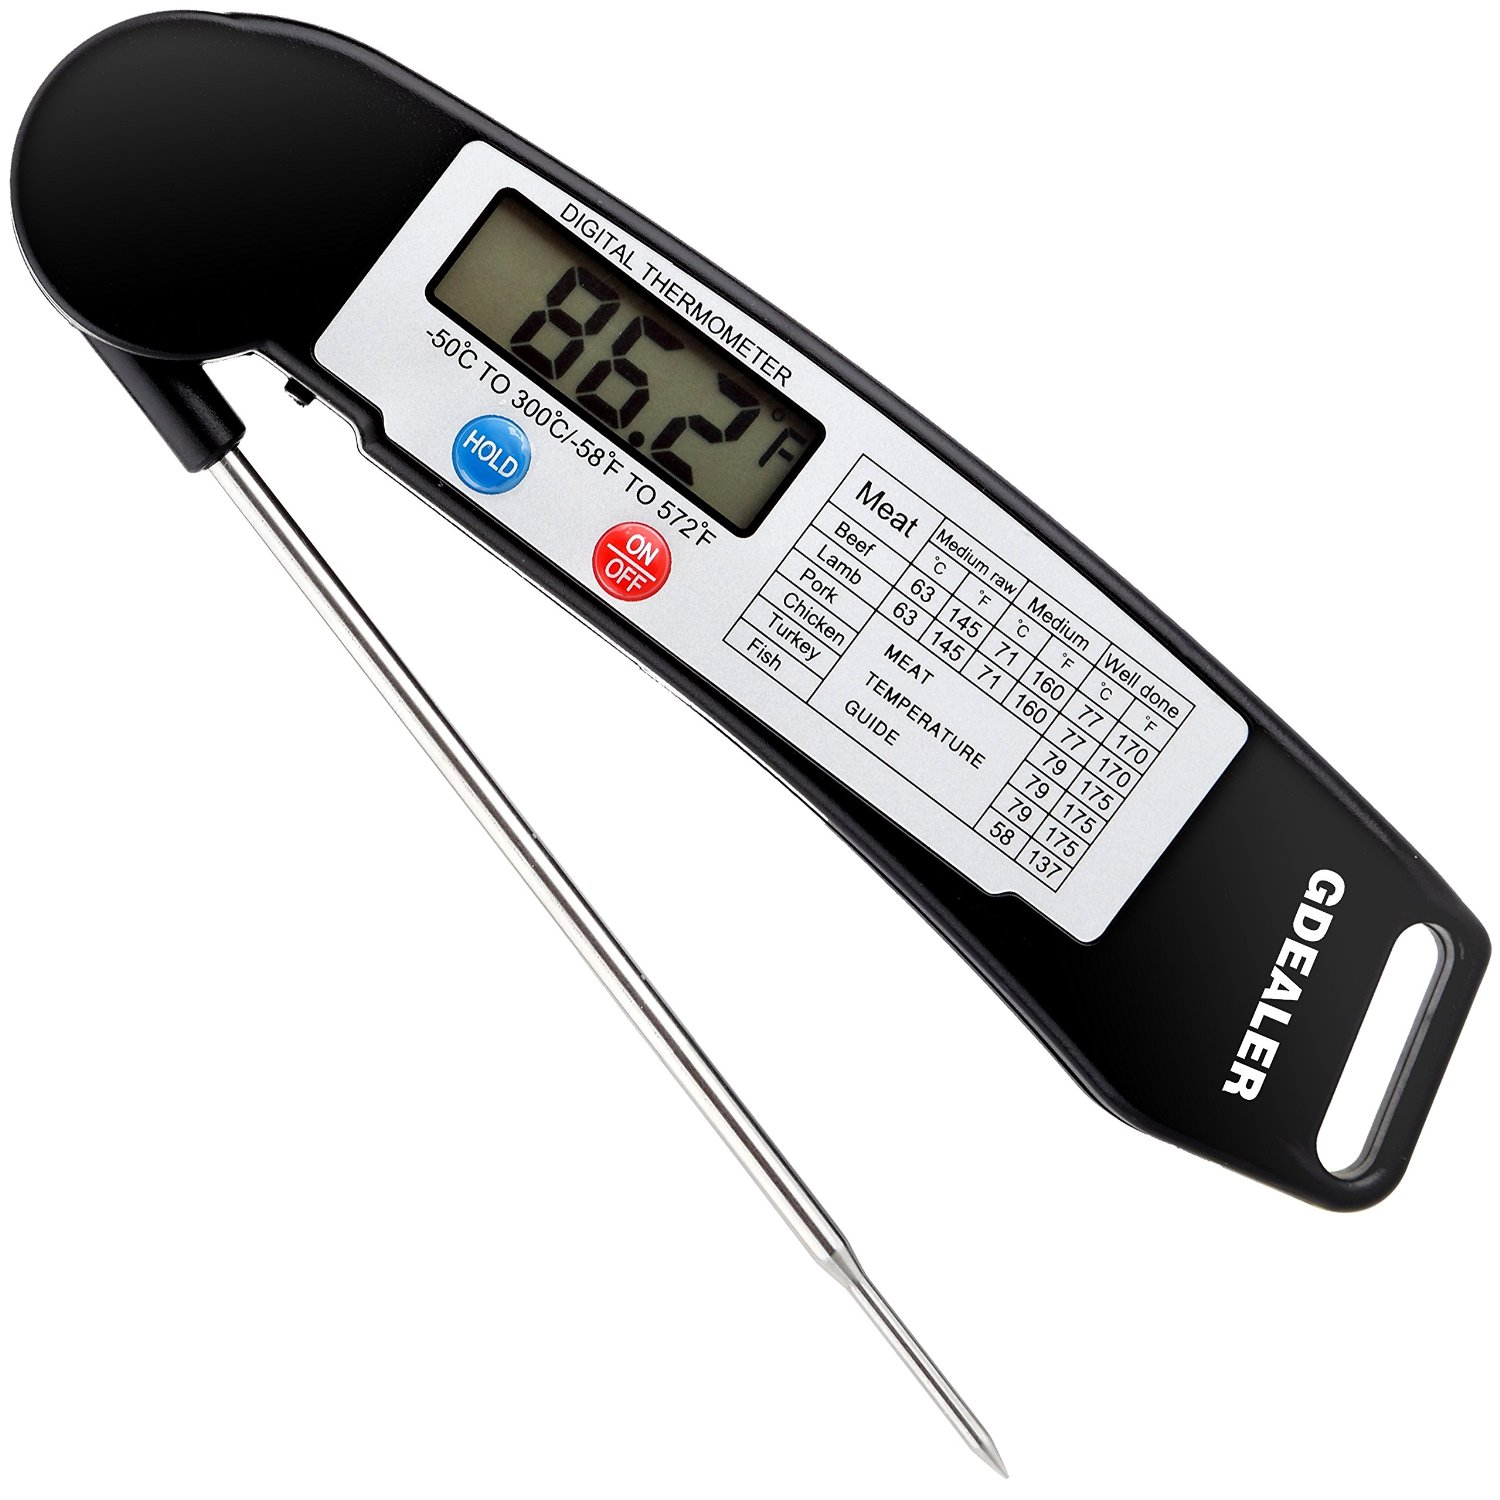 Top 10 Best Sellers in Instant Read Thermometers – Jan 2017 - Thermometer Reviews